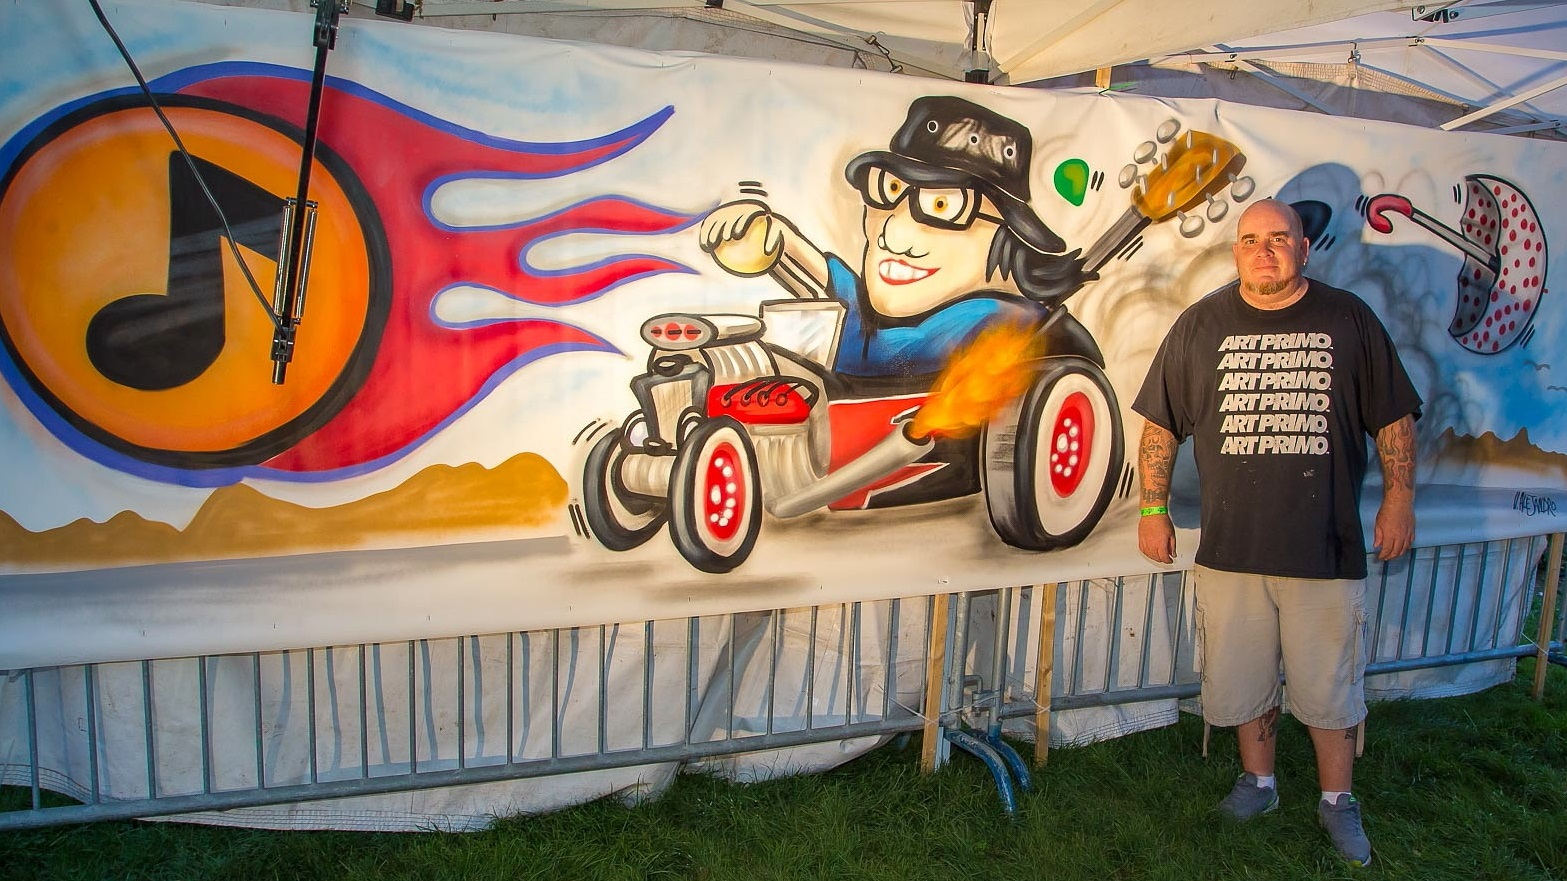 Artist Vinny Alejandro portrays Robby Takac, Music Is Art's founder, riding in style. (Don Nieman/Special to The News)